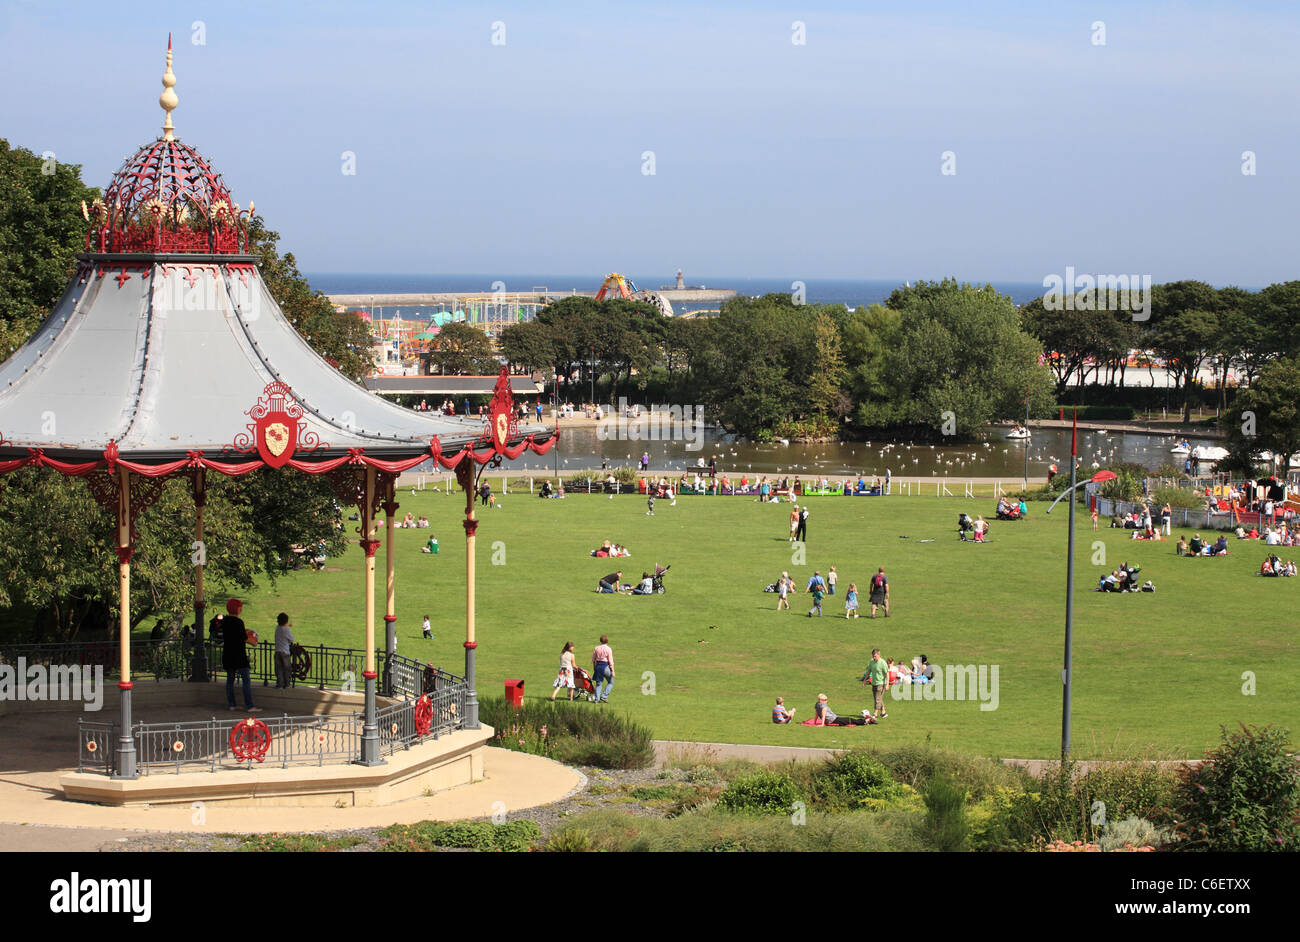 South Shields South Marine Park with bandstand, boating lake and miniature steam railway, North East England, UK - Stock Image